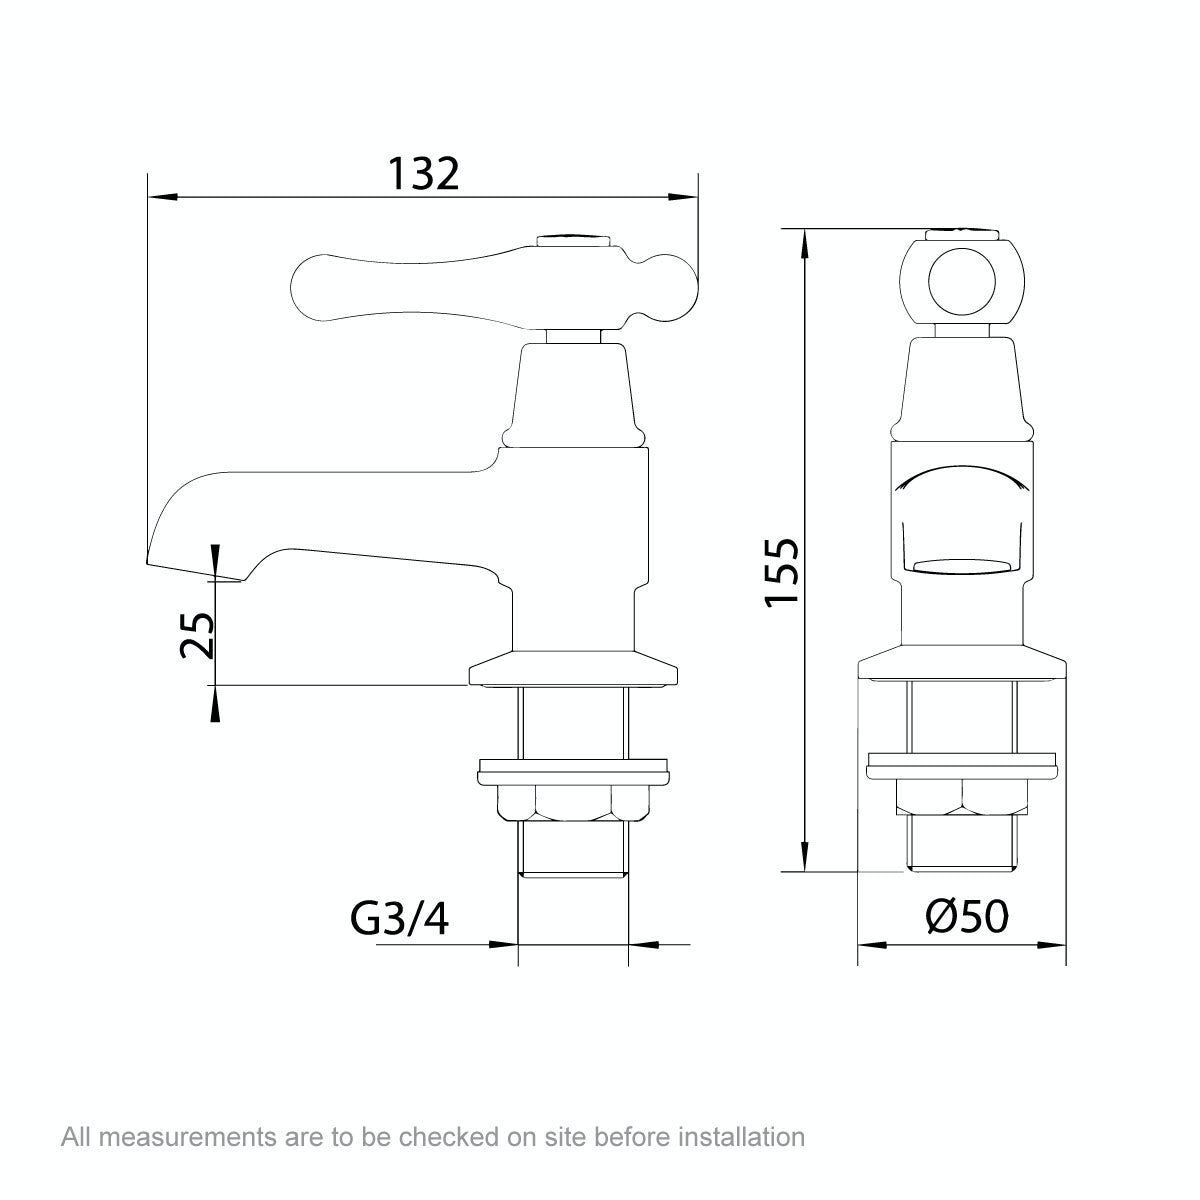 Dimensions for The Bath Co. Camberley lever bath pillar taps